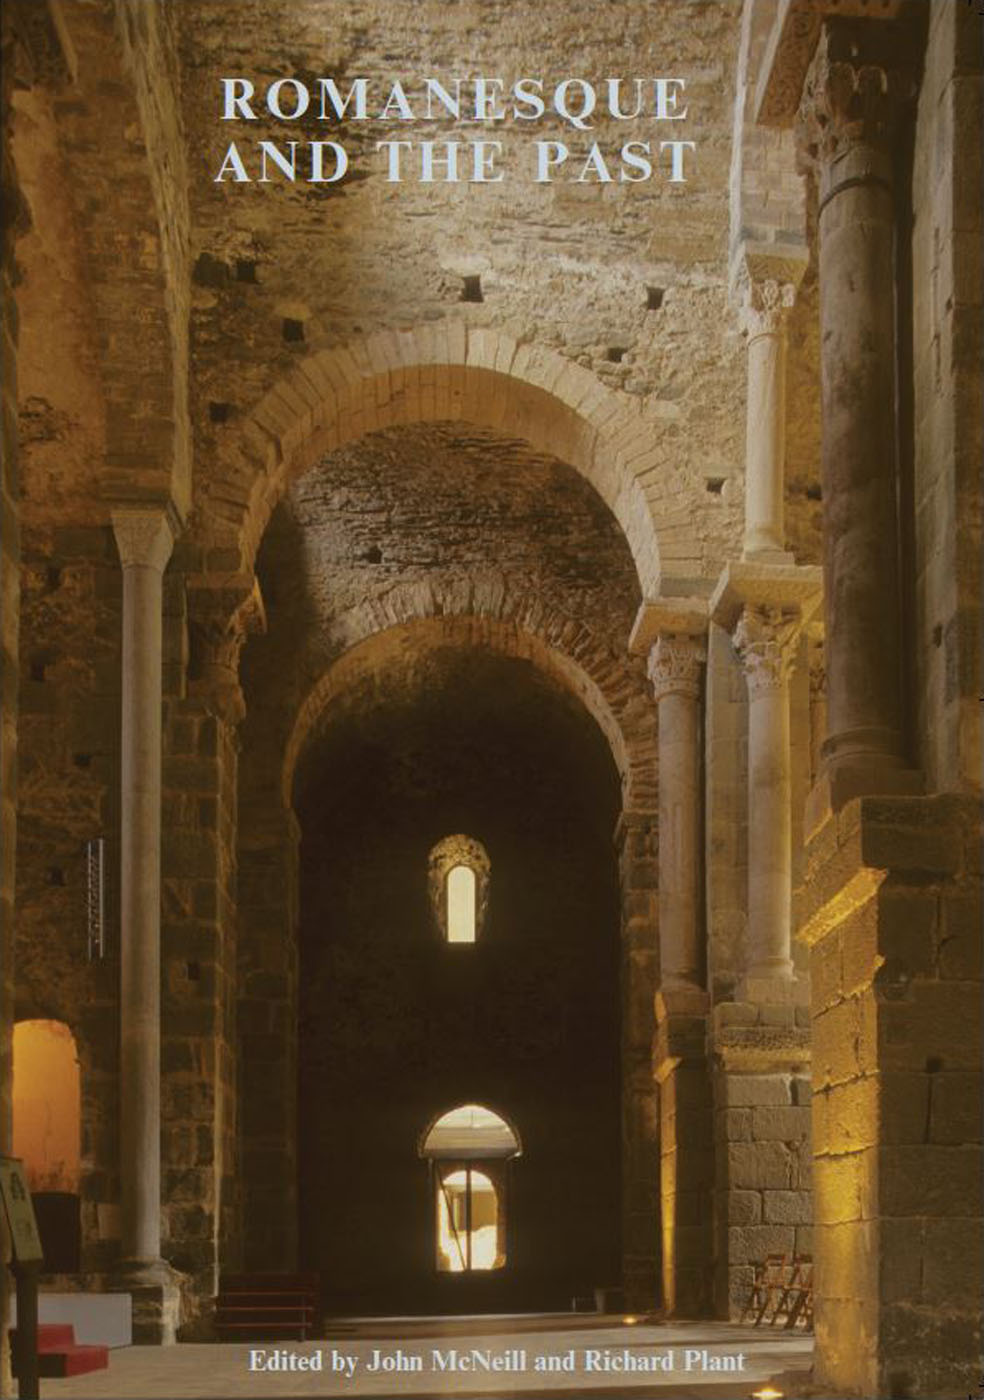 Romanesque and the Past